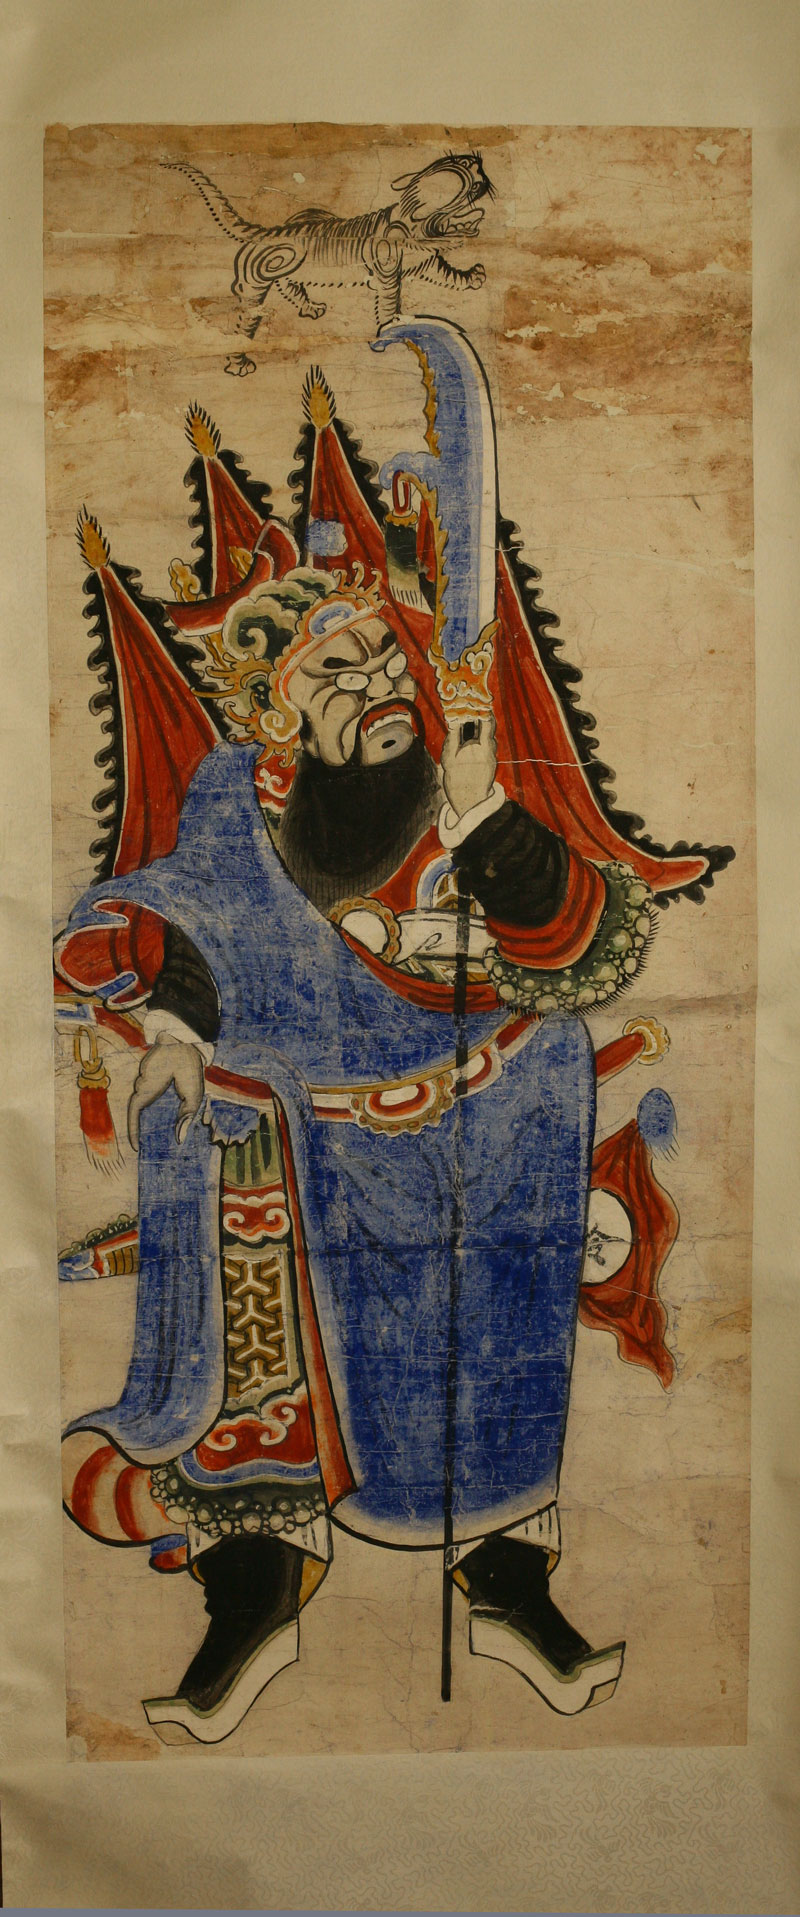 Painting of a legendary god, China, 19th century.